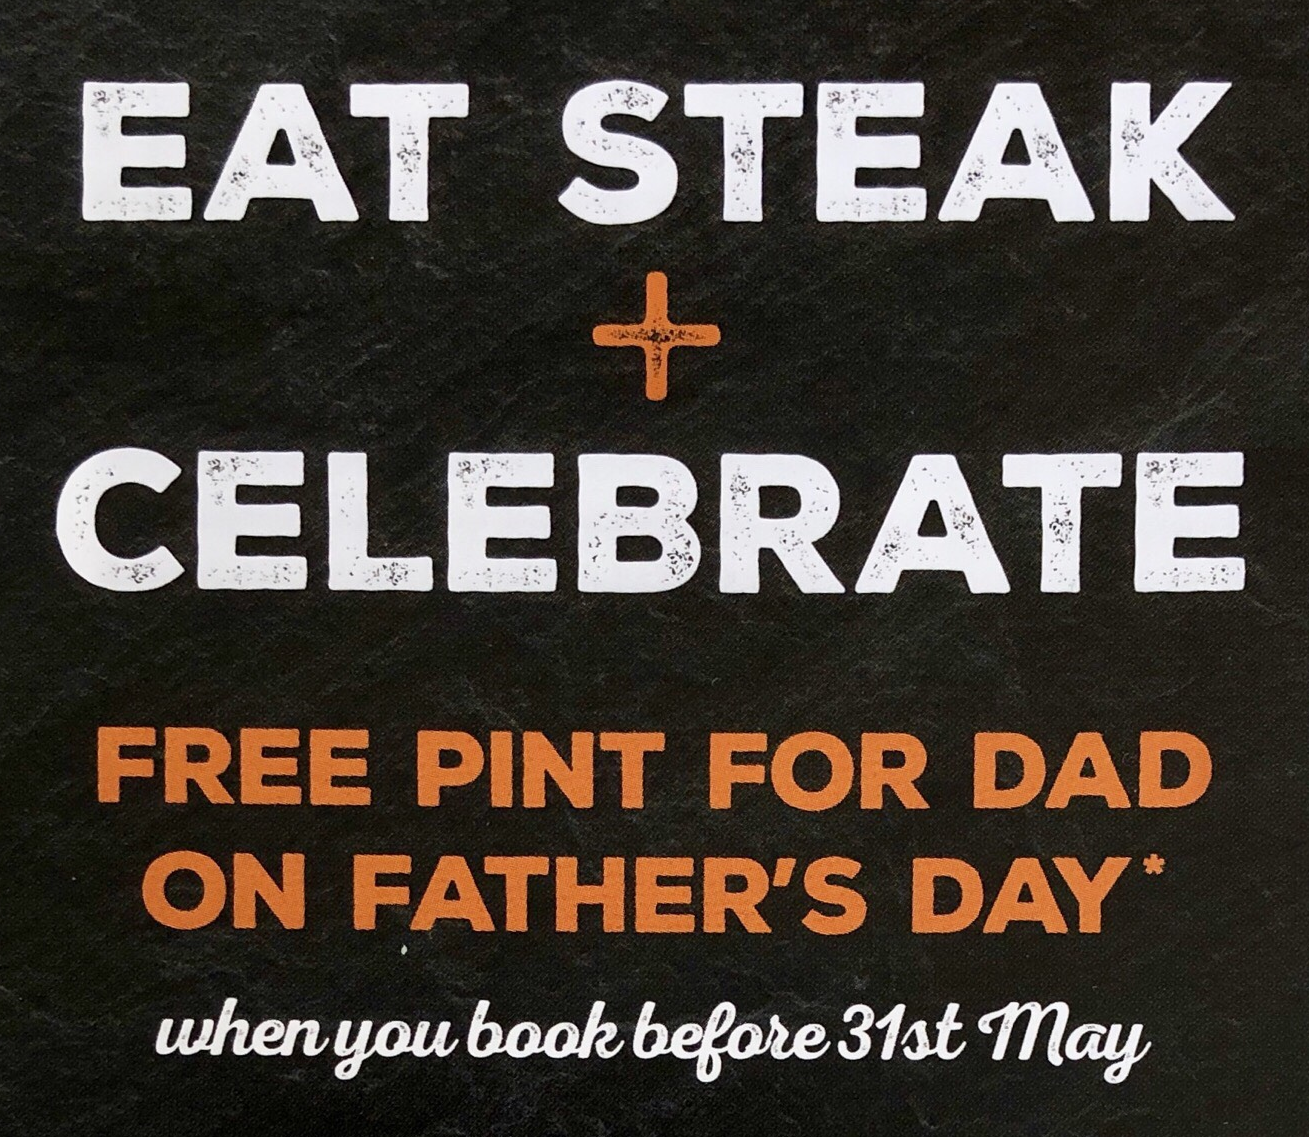 Free Pint for Dad